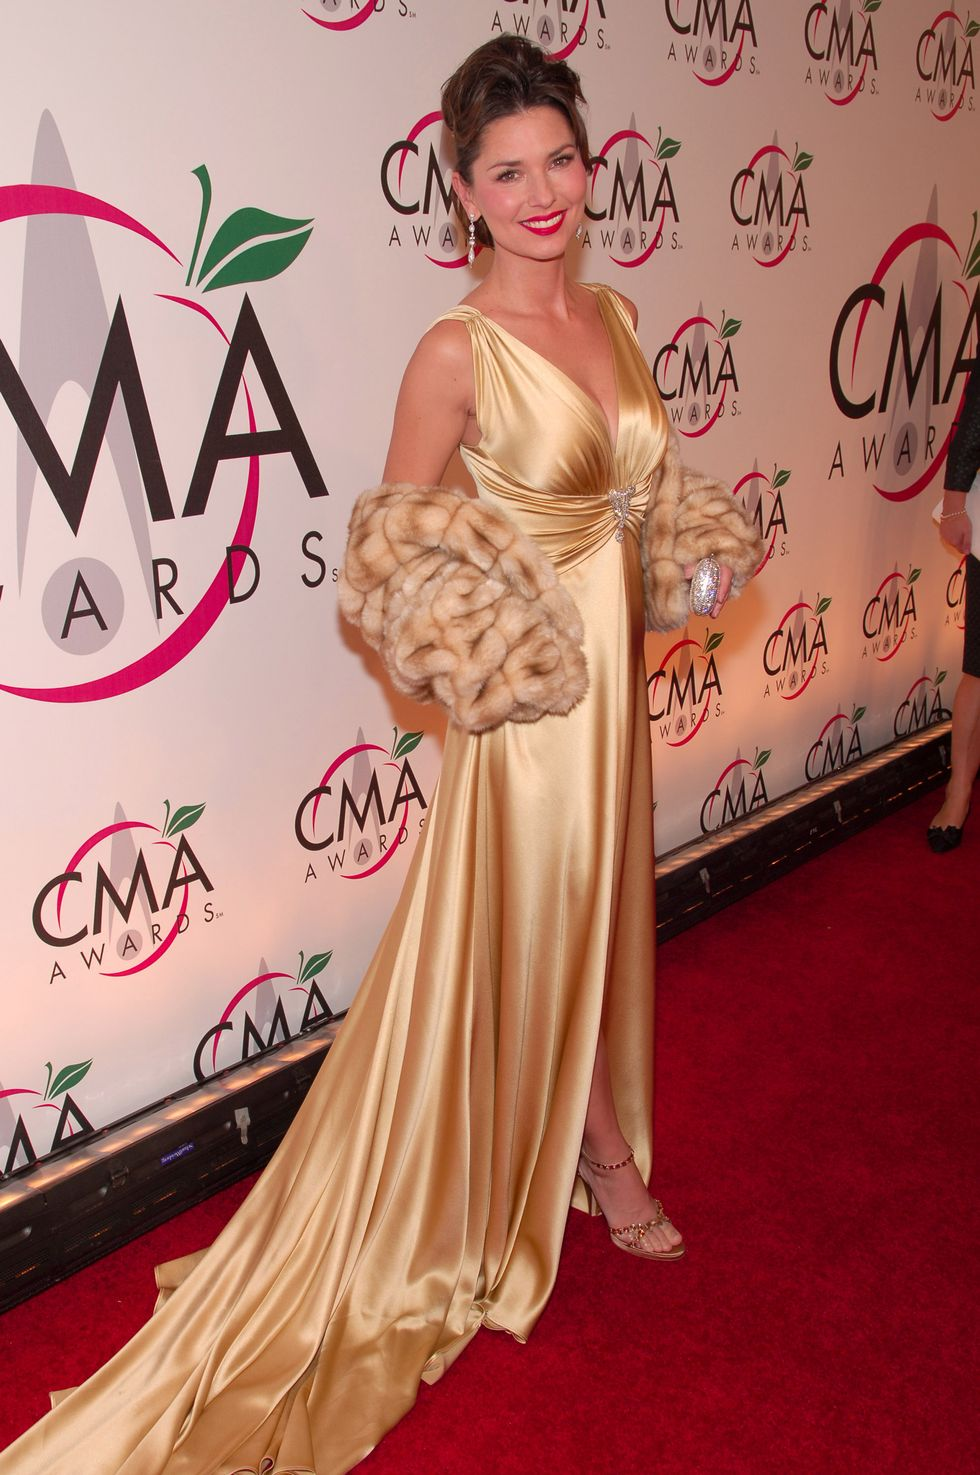 Shania Twain during The 39th Annual CMA Awards - Arrivals at Madison Square Garden in New York City, New York, United States. (Photo by Michael Loccisano/FilmMagic)